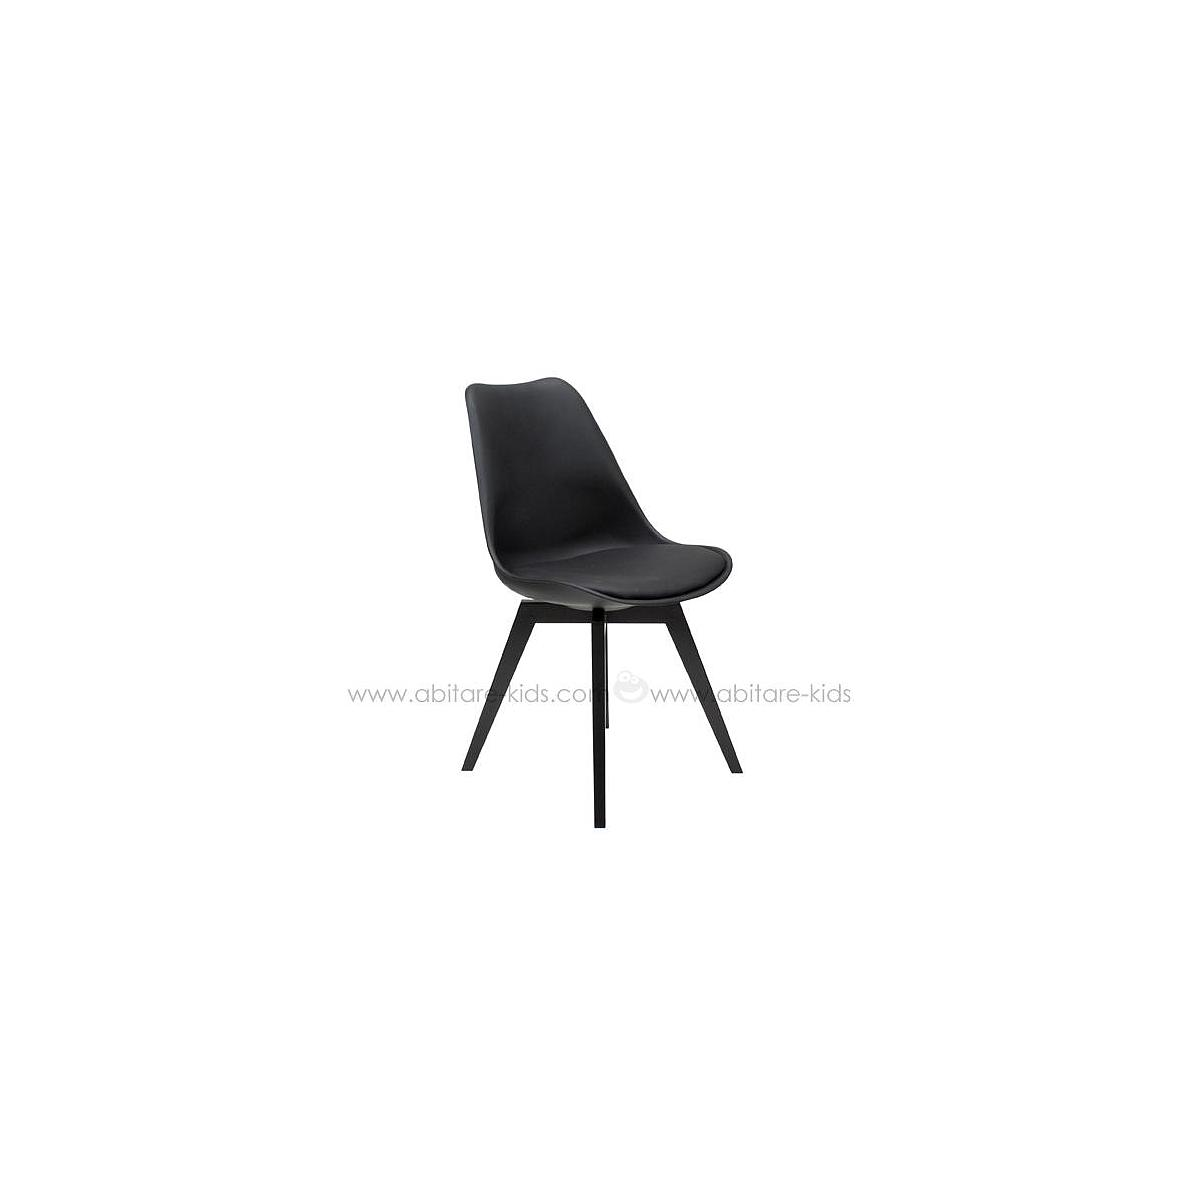 C-BAR by Tenzo Chaise Gina-Bess Assise noire et pied noir